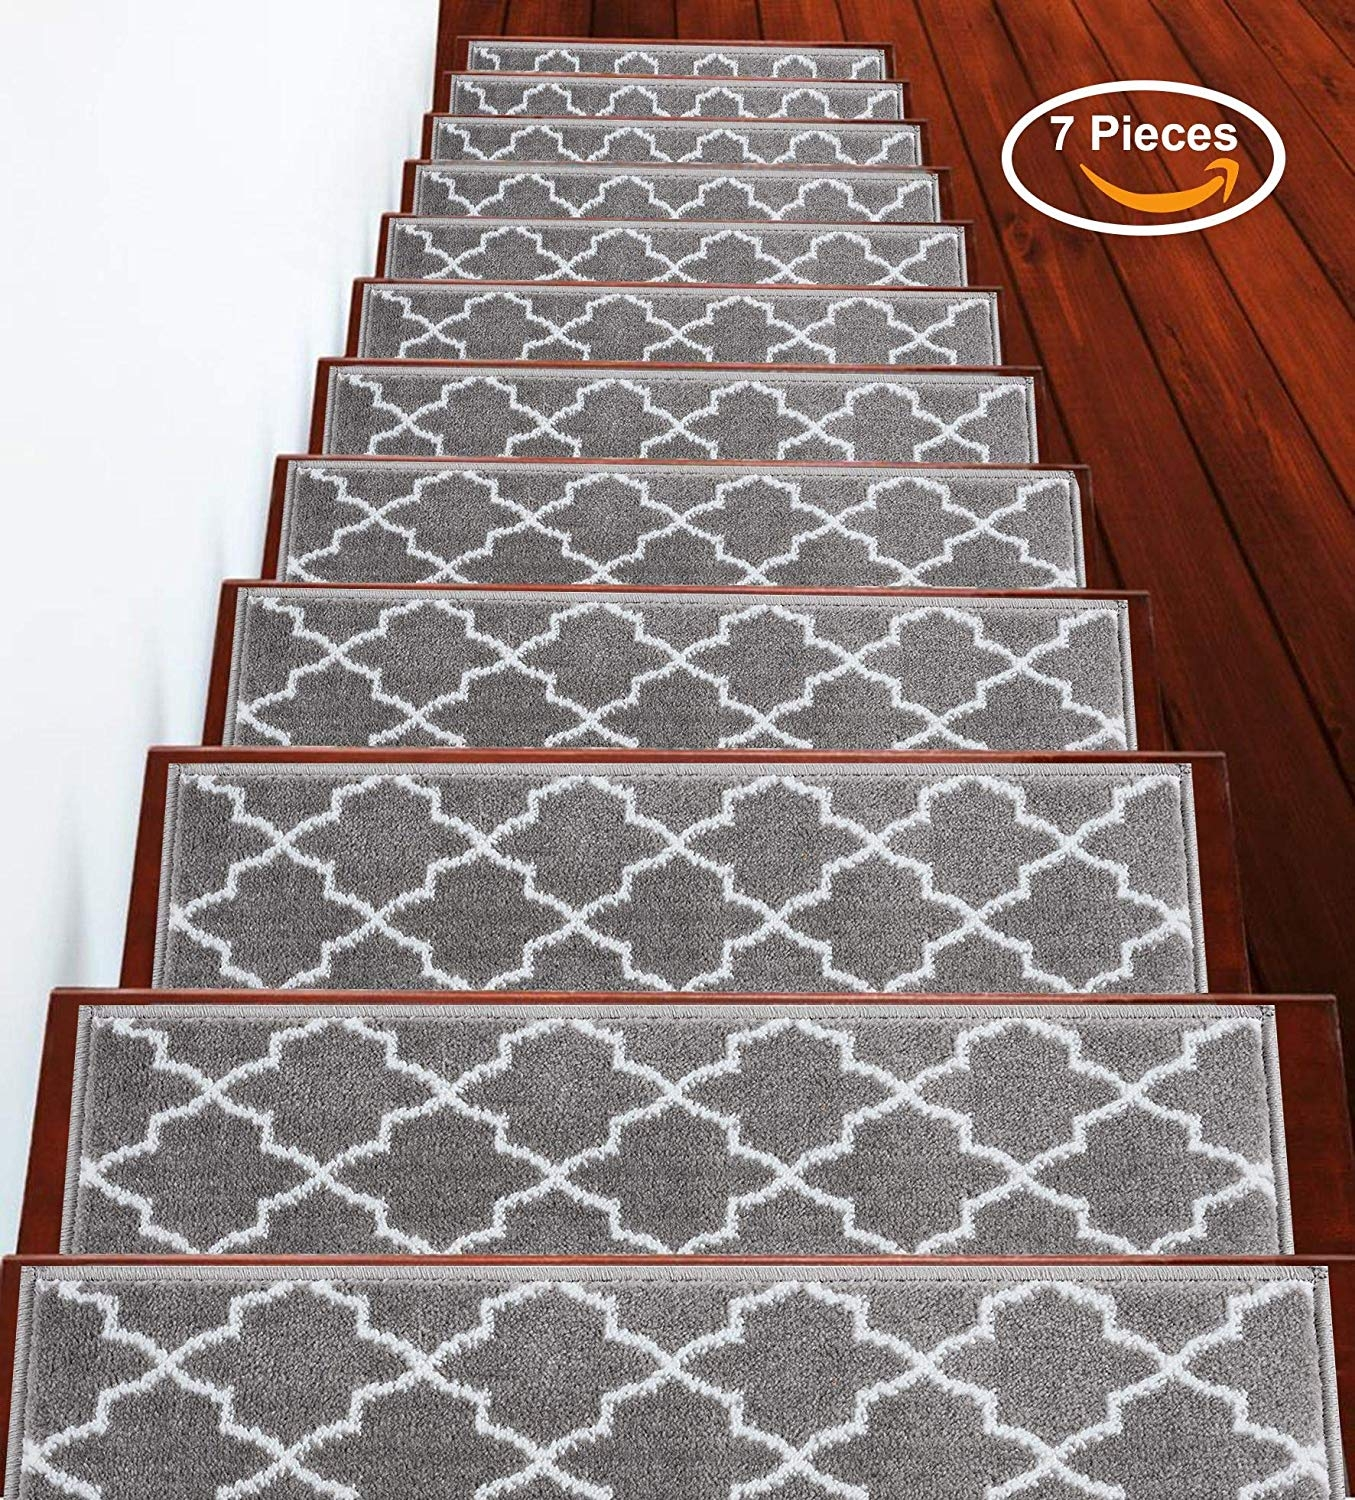 Sussexhome Stairs Slide Stair Treads Carpet Stair For Stairs   Cheap Carpet Stair Treads   Carpet Runners   Wall Carpet   Wool Carpet   Rugs   Stair Runner